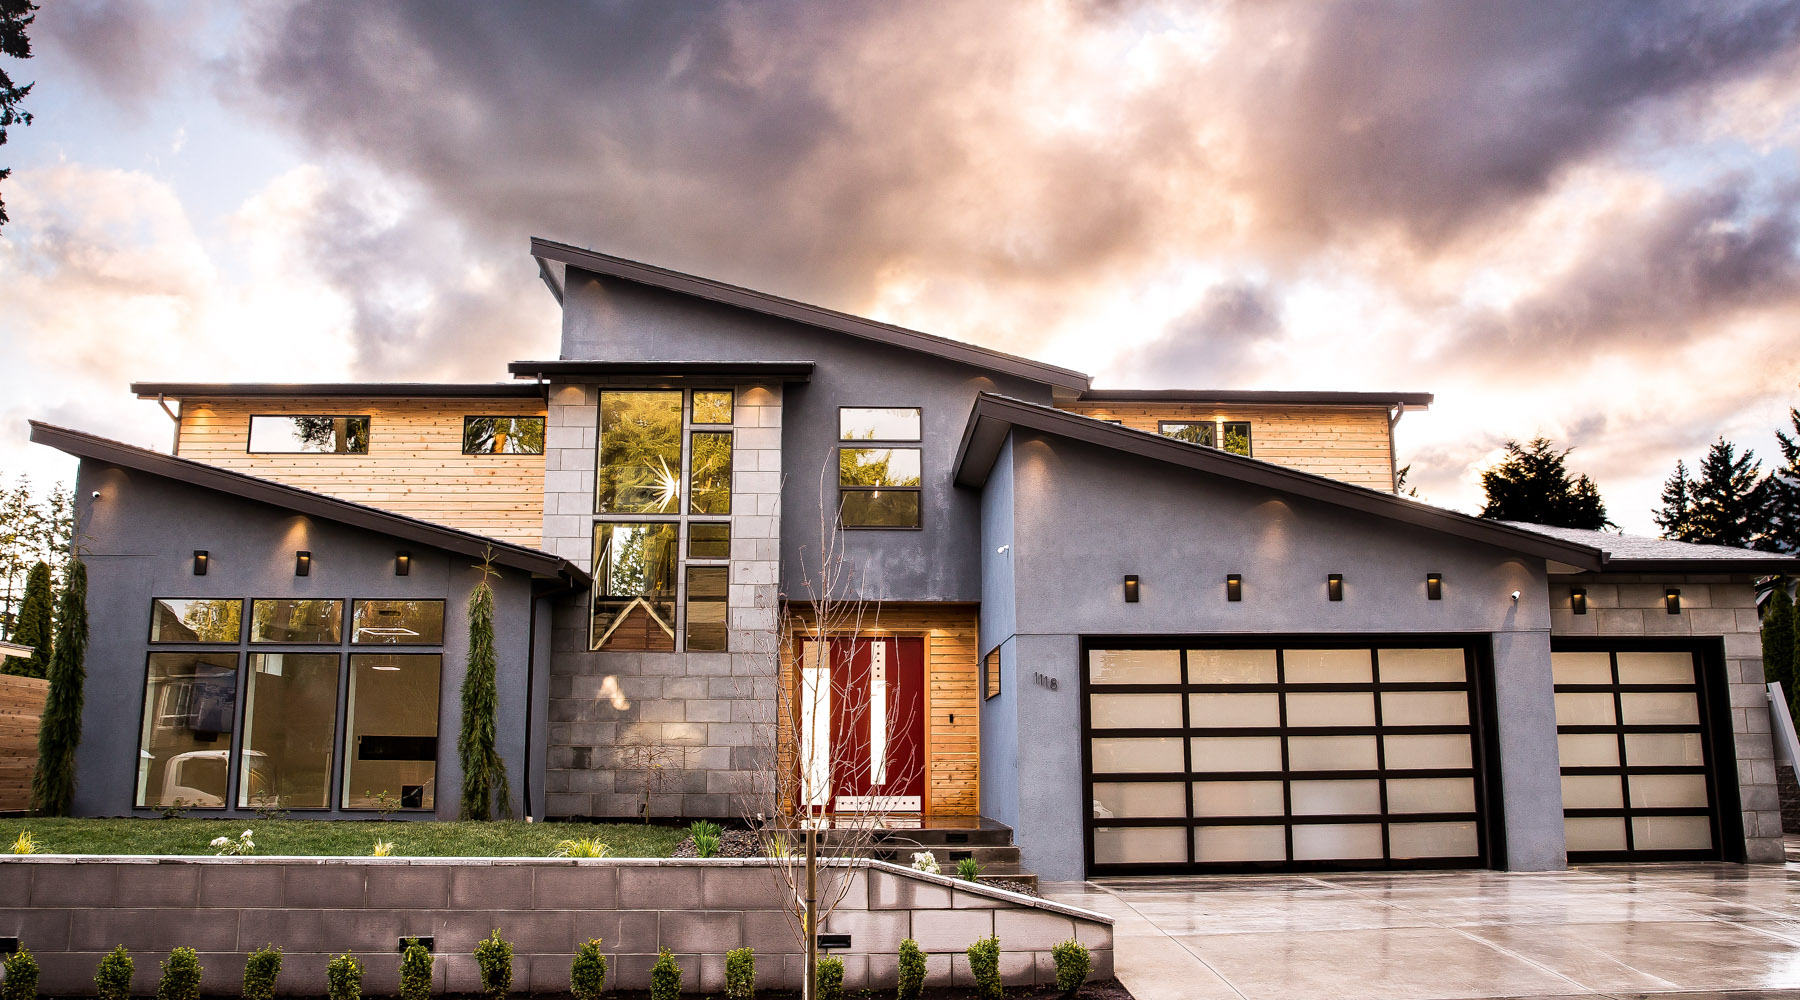 Home Improvements - Significantly Increase The Value Of Property